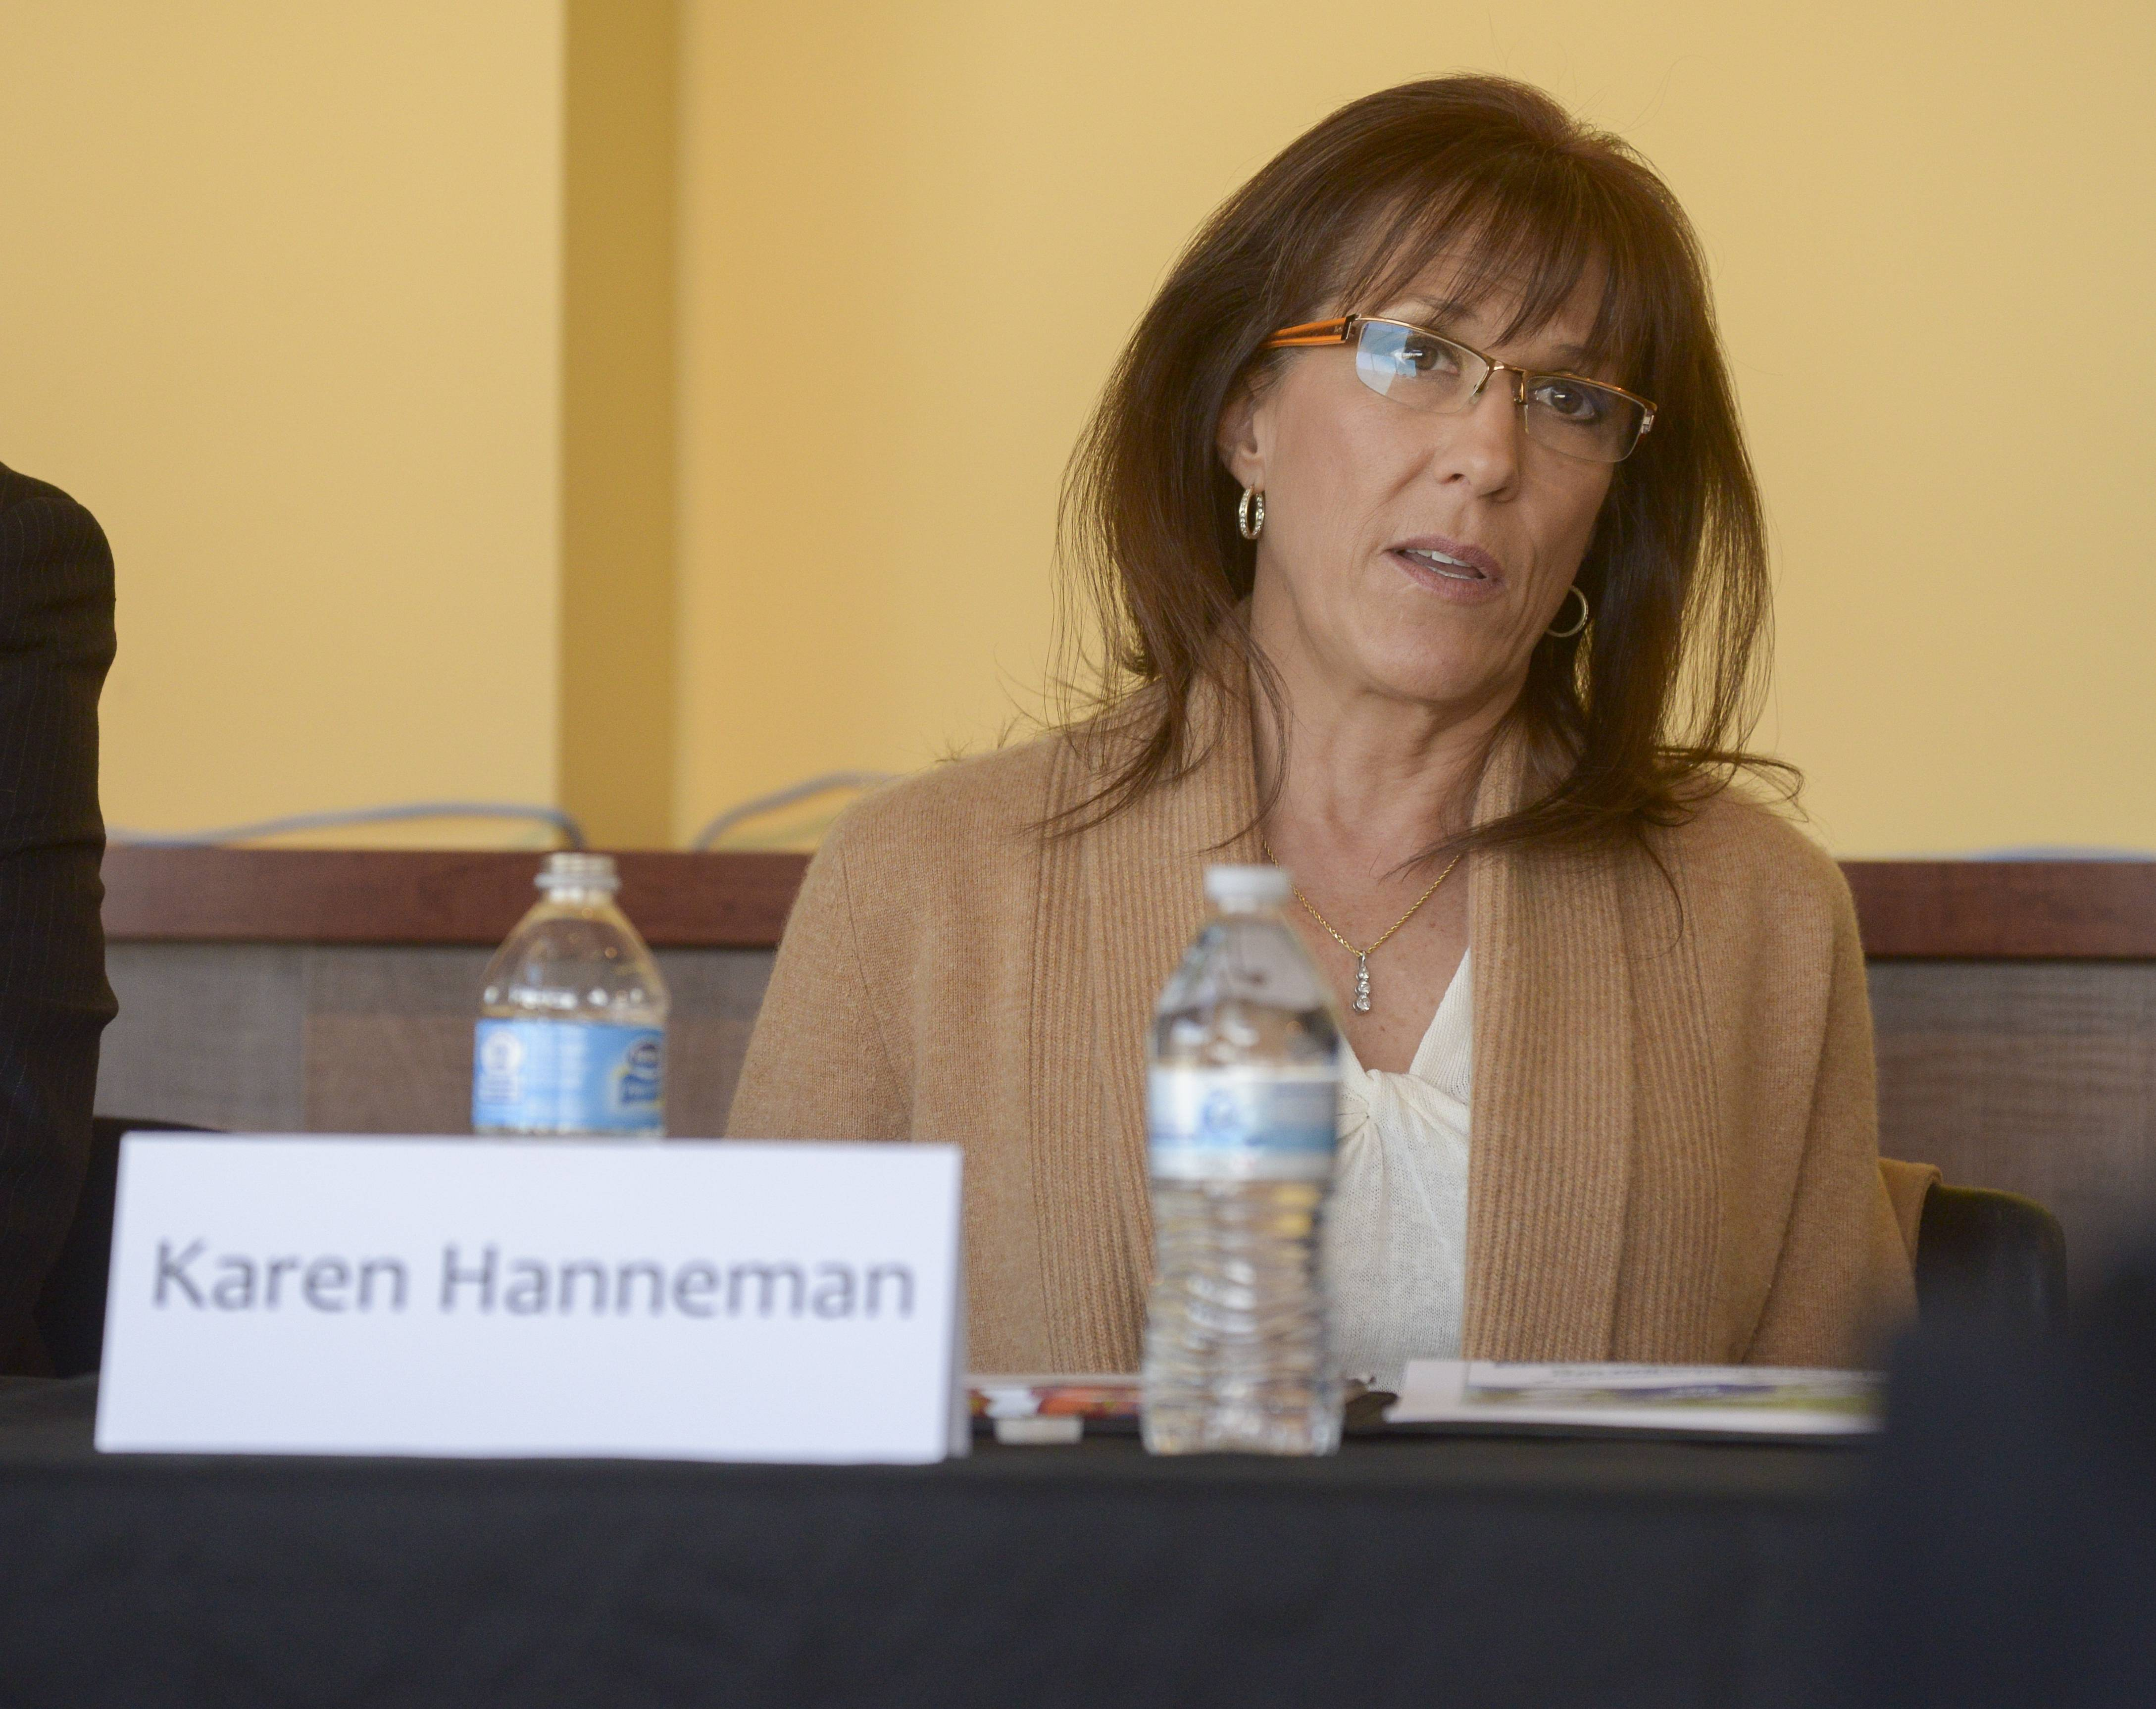 Karen Hanneman of Naperville, whose son, Justin Tokar, died of a heroin overdose in January 2011 when he was 21, says parents should get training in how to use Narcan, a drug that can reverse the effects of a heroin overdose.